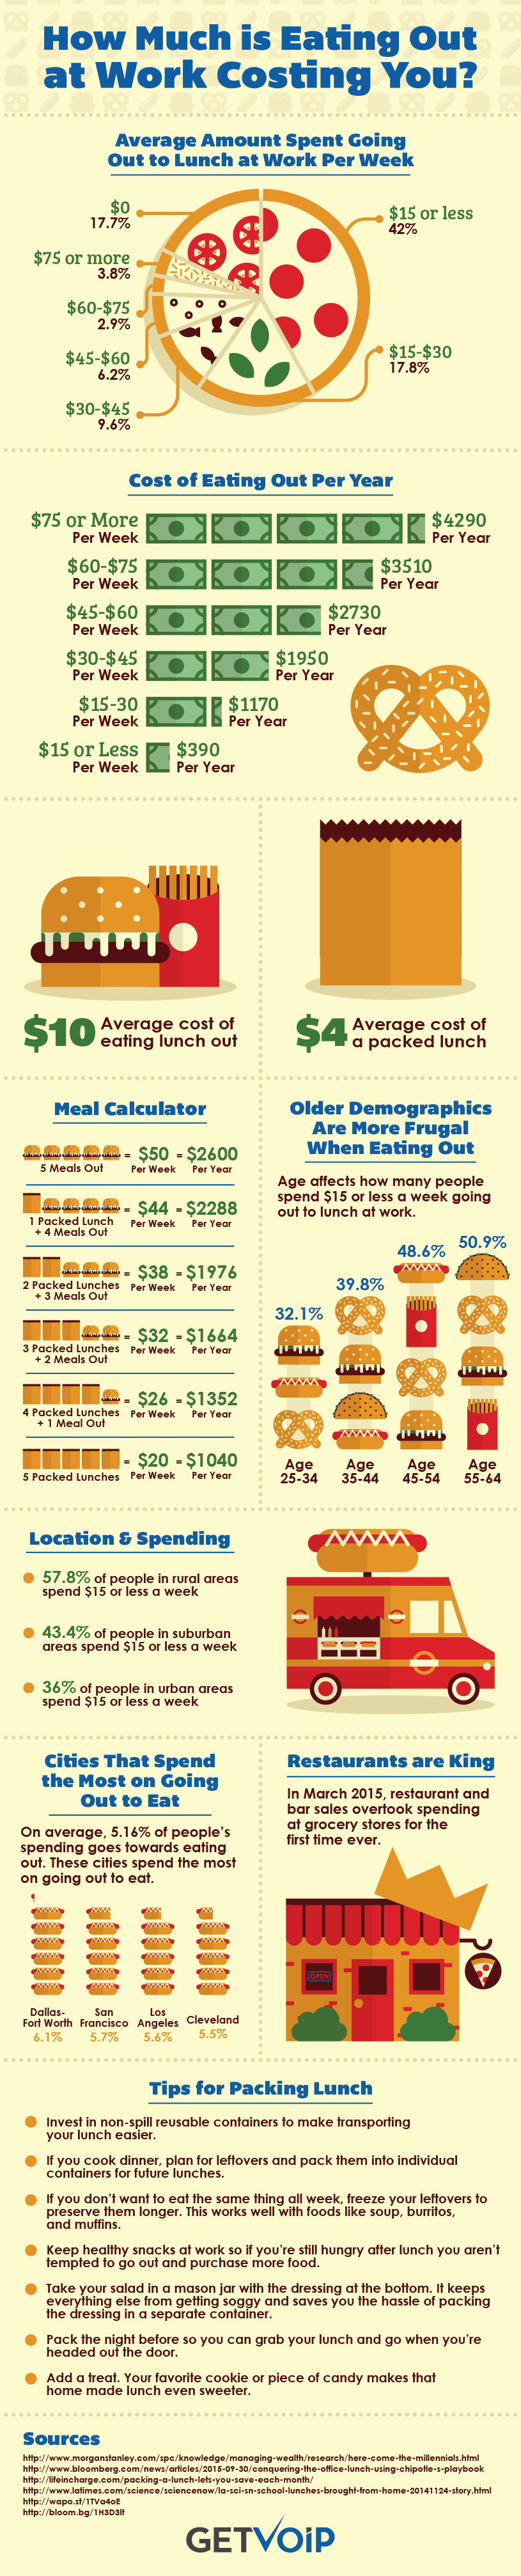 How-Much-is-Eating-Out-at-Work-Costing-You-Infographic